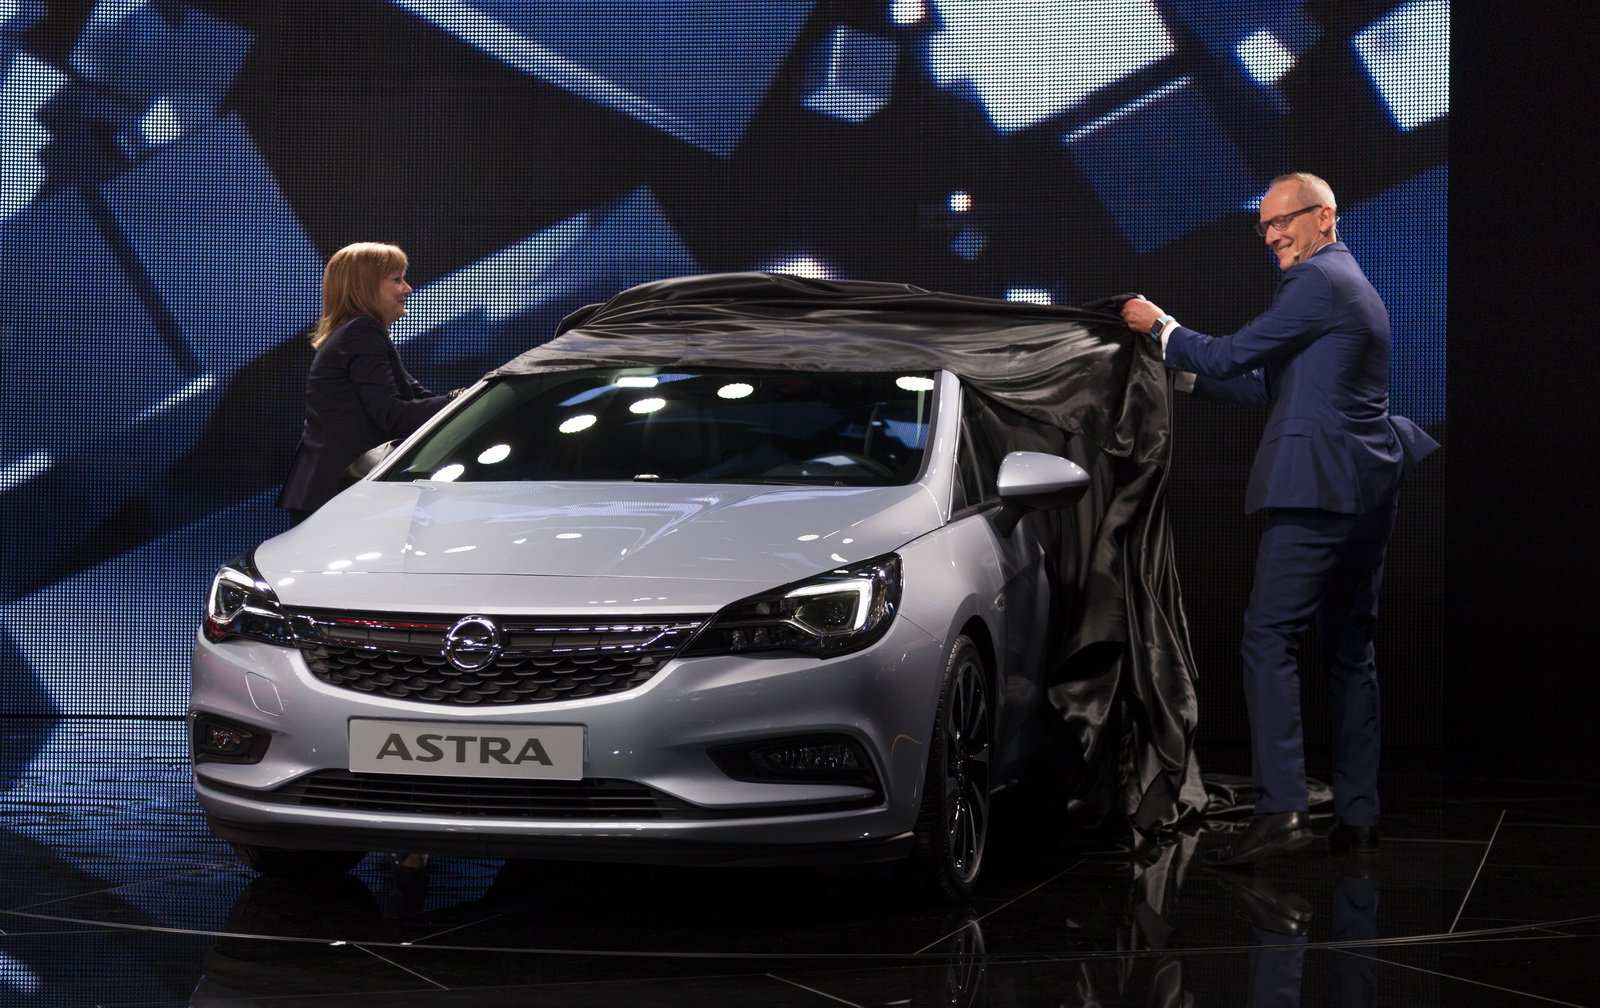 30 New 2020 Opel Astra 2020 Redesign and Concept by 2020 Opel Astra 2020